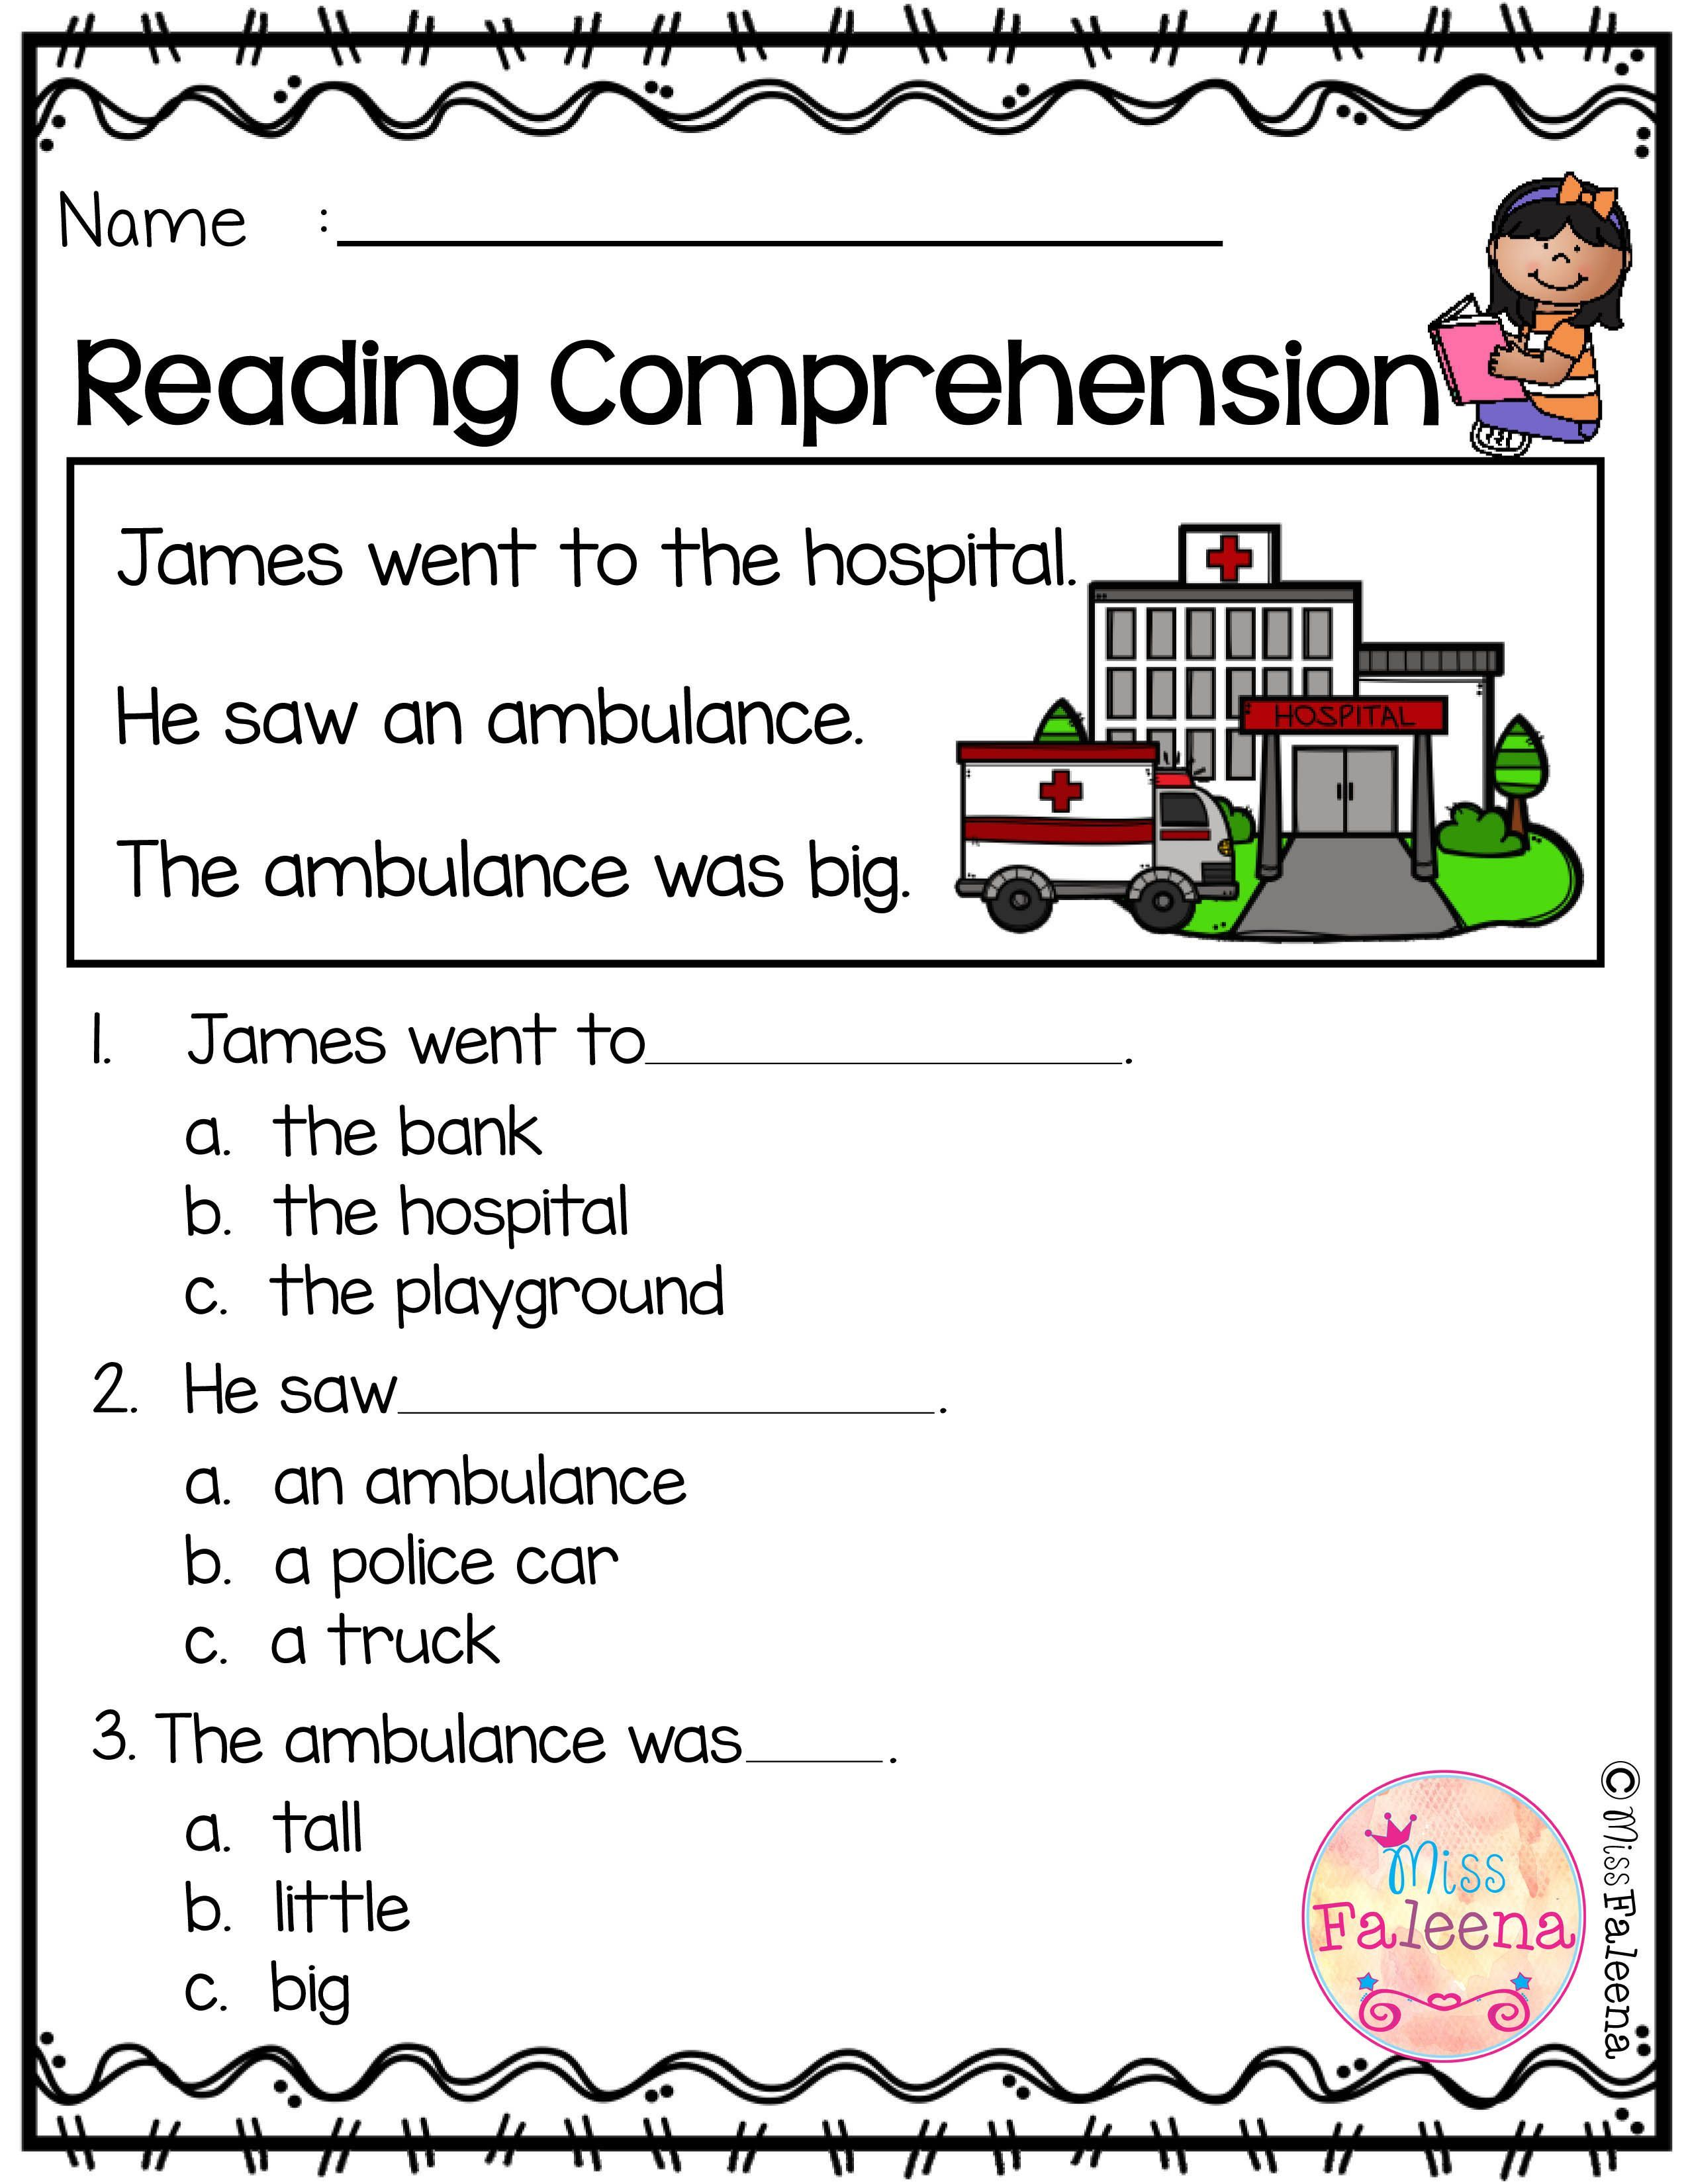 Free Reading Comprehension Free Reading Comprehension Is